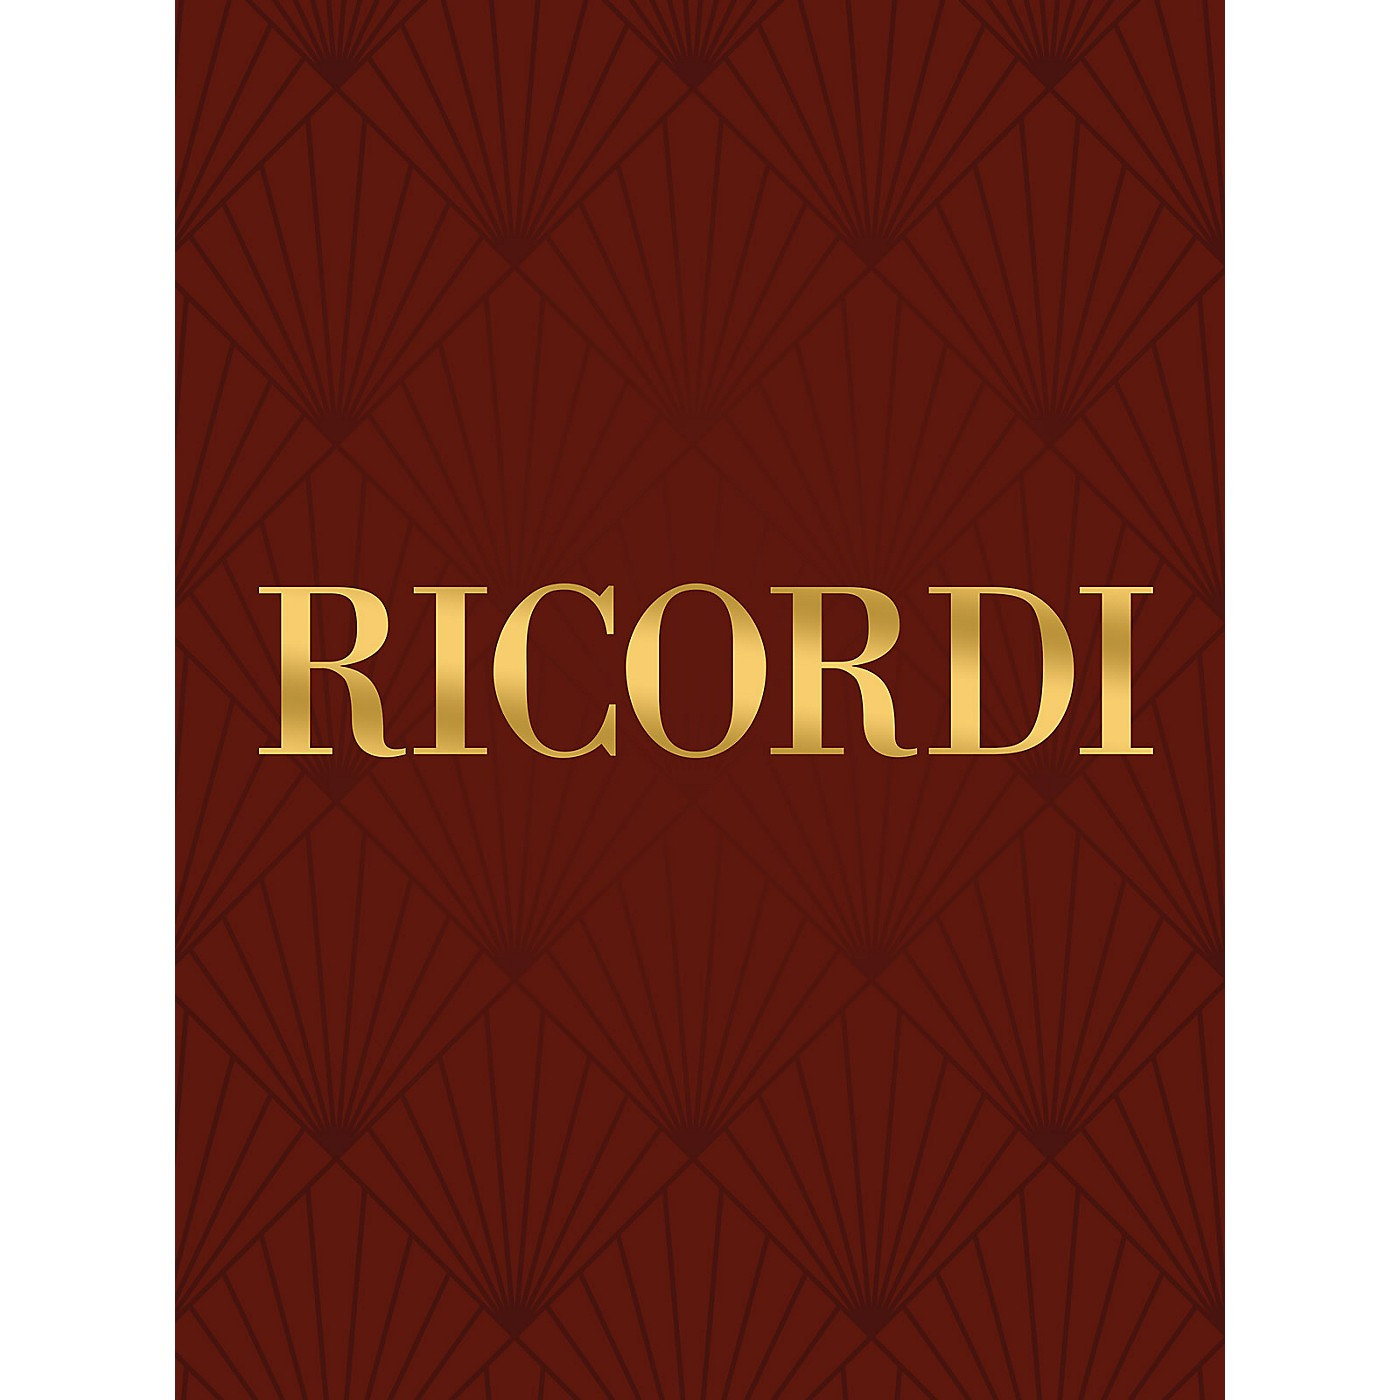 Ricordi 100 Progressive Exercises, Op. 139 Piano Method Composed by Carl Czerny Edited by Giuseppe Buonamici thumbnail